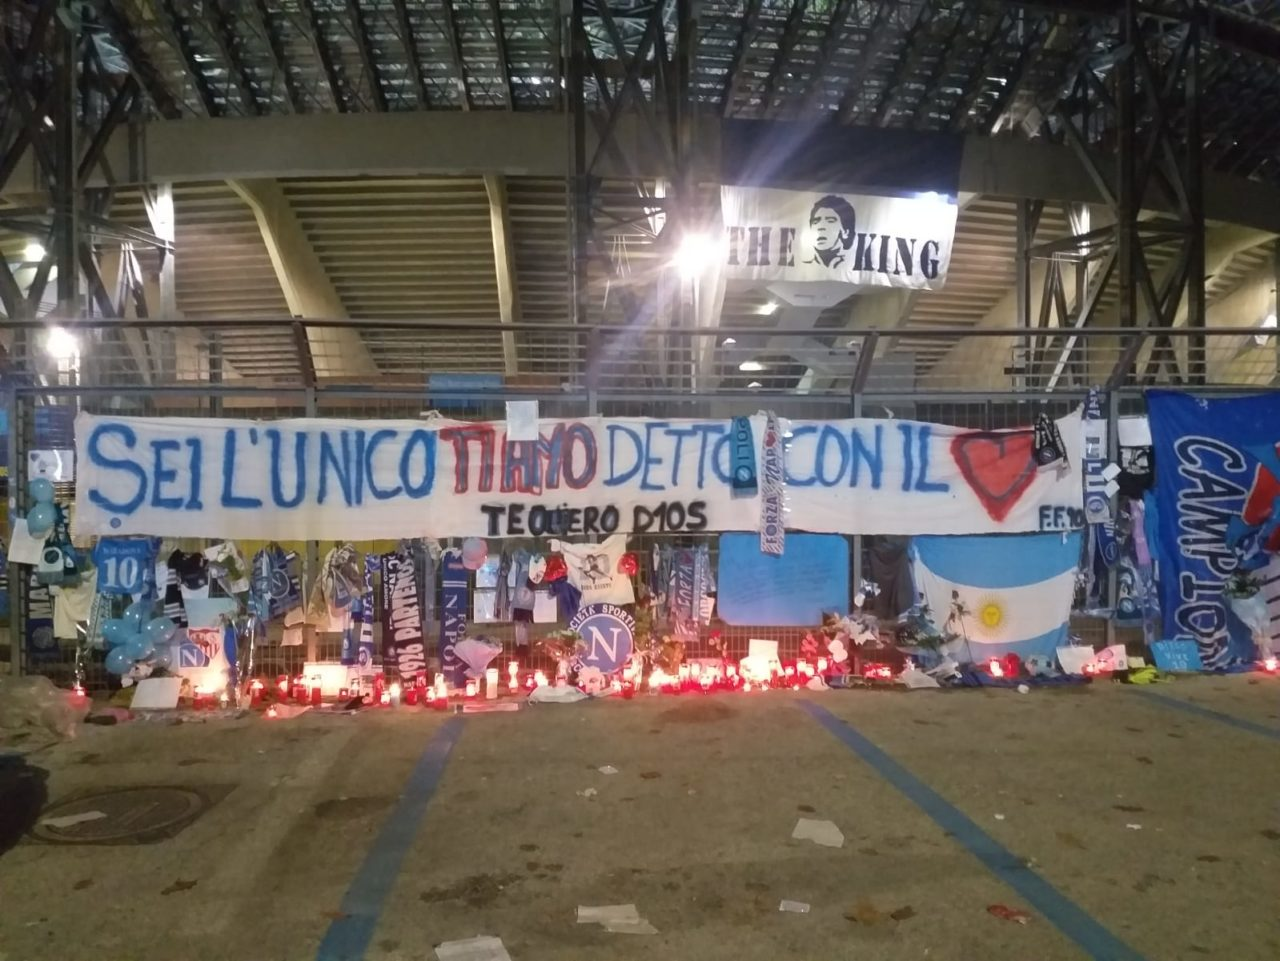 Napoli fans pay tribute to Diego Armando Maradona outside the stadio San Paolo the day after his death